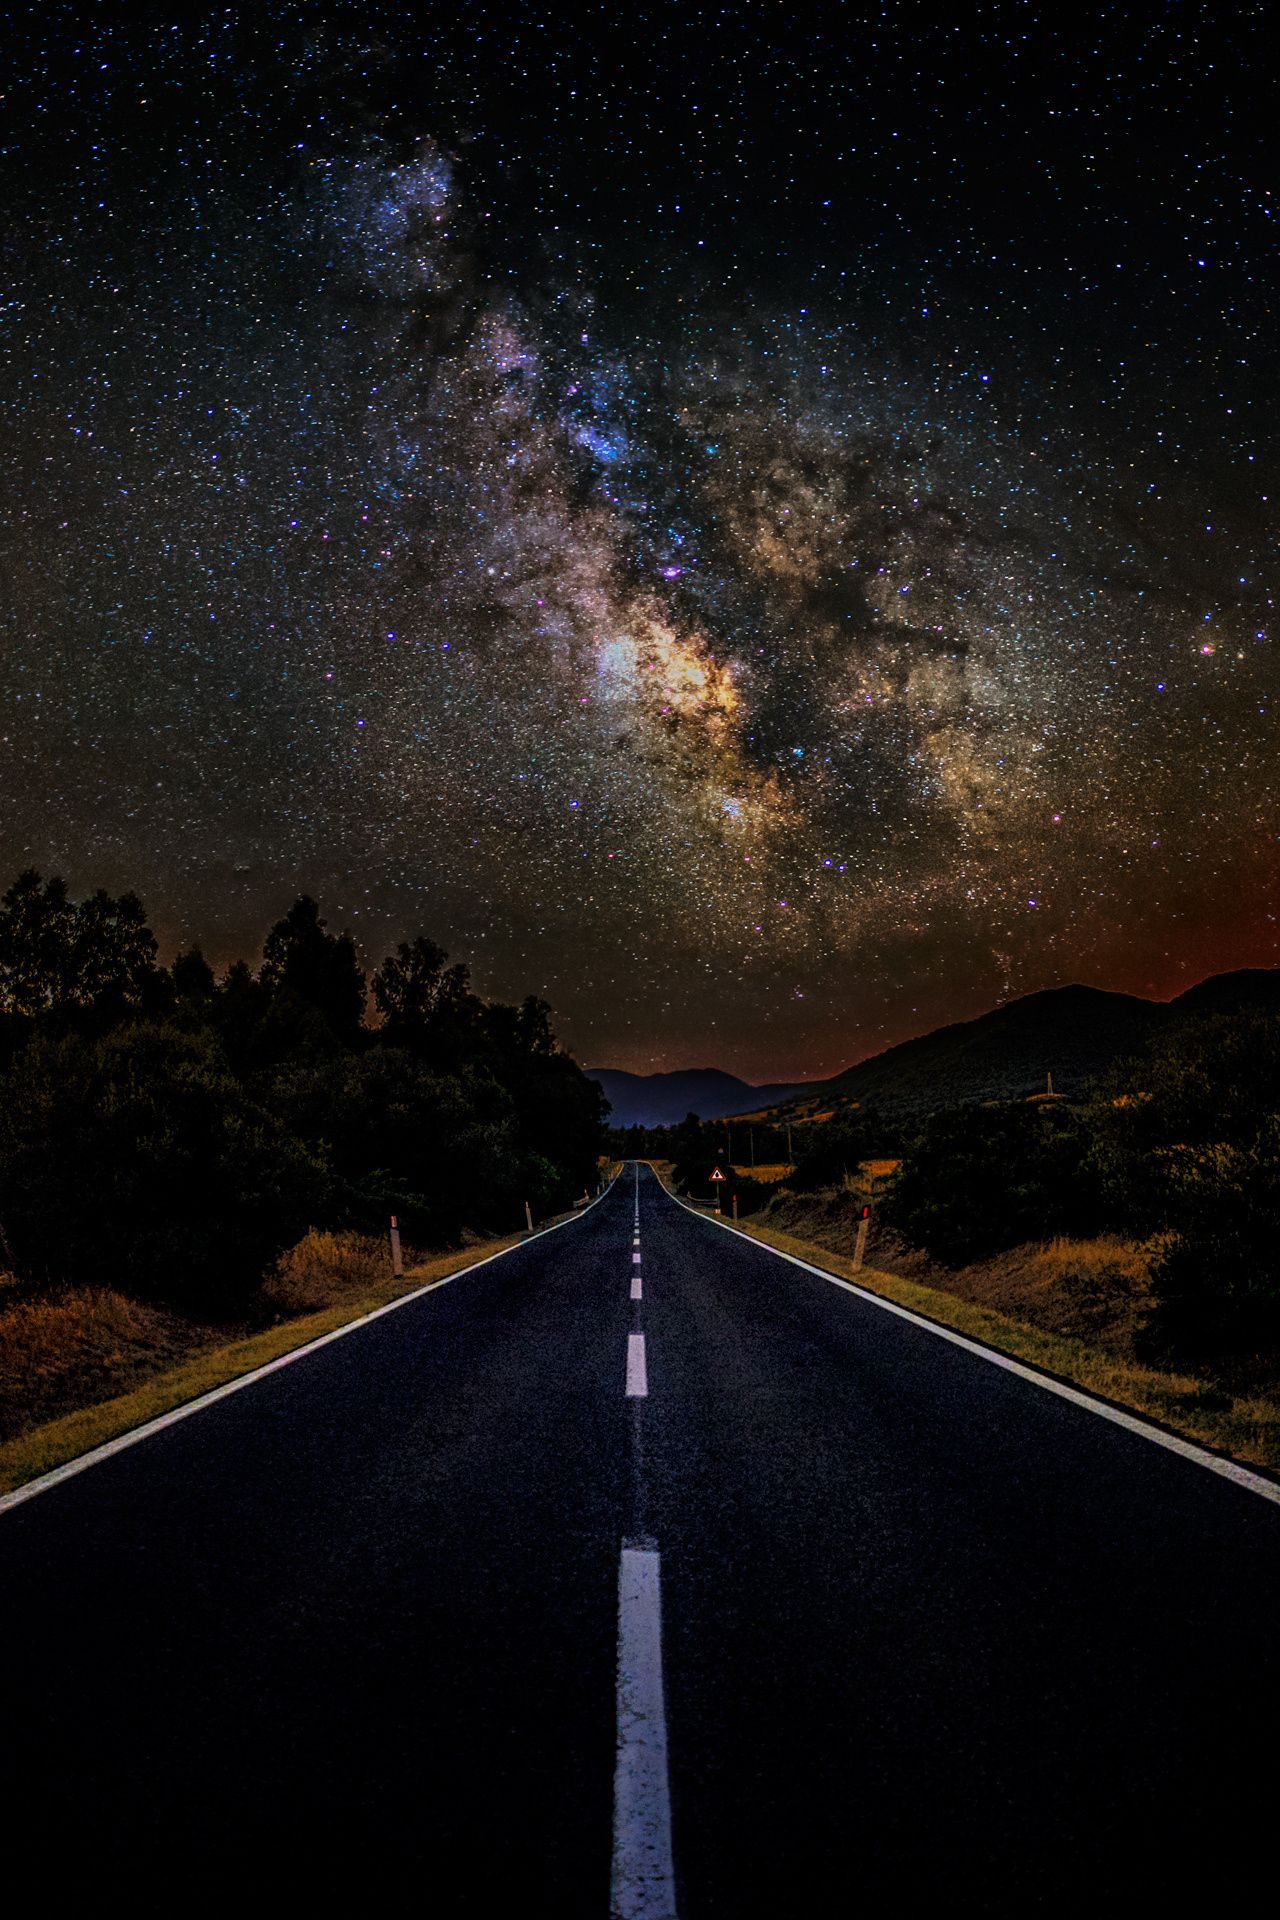 Milky road astrophotography by luca libralato on - Space wallpaper road ...